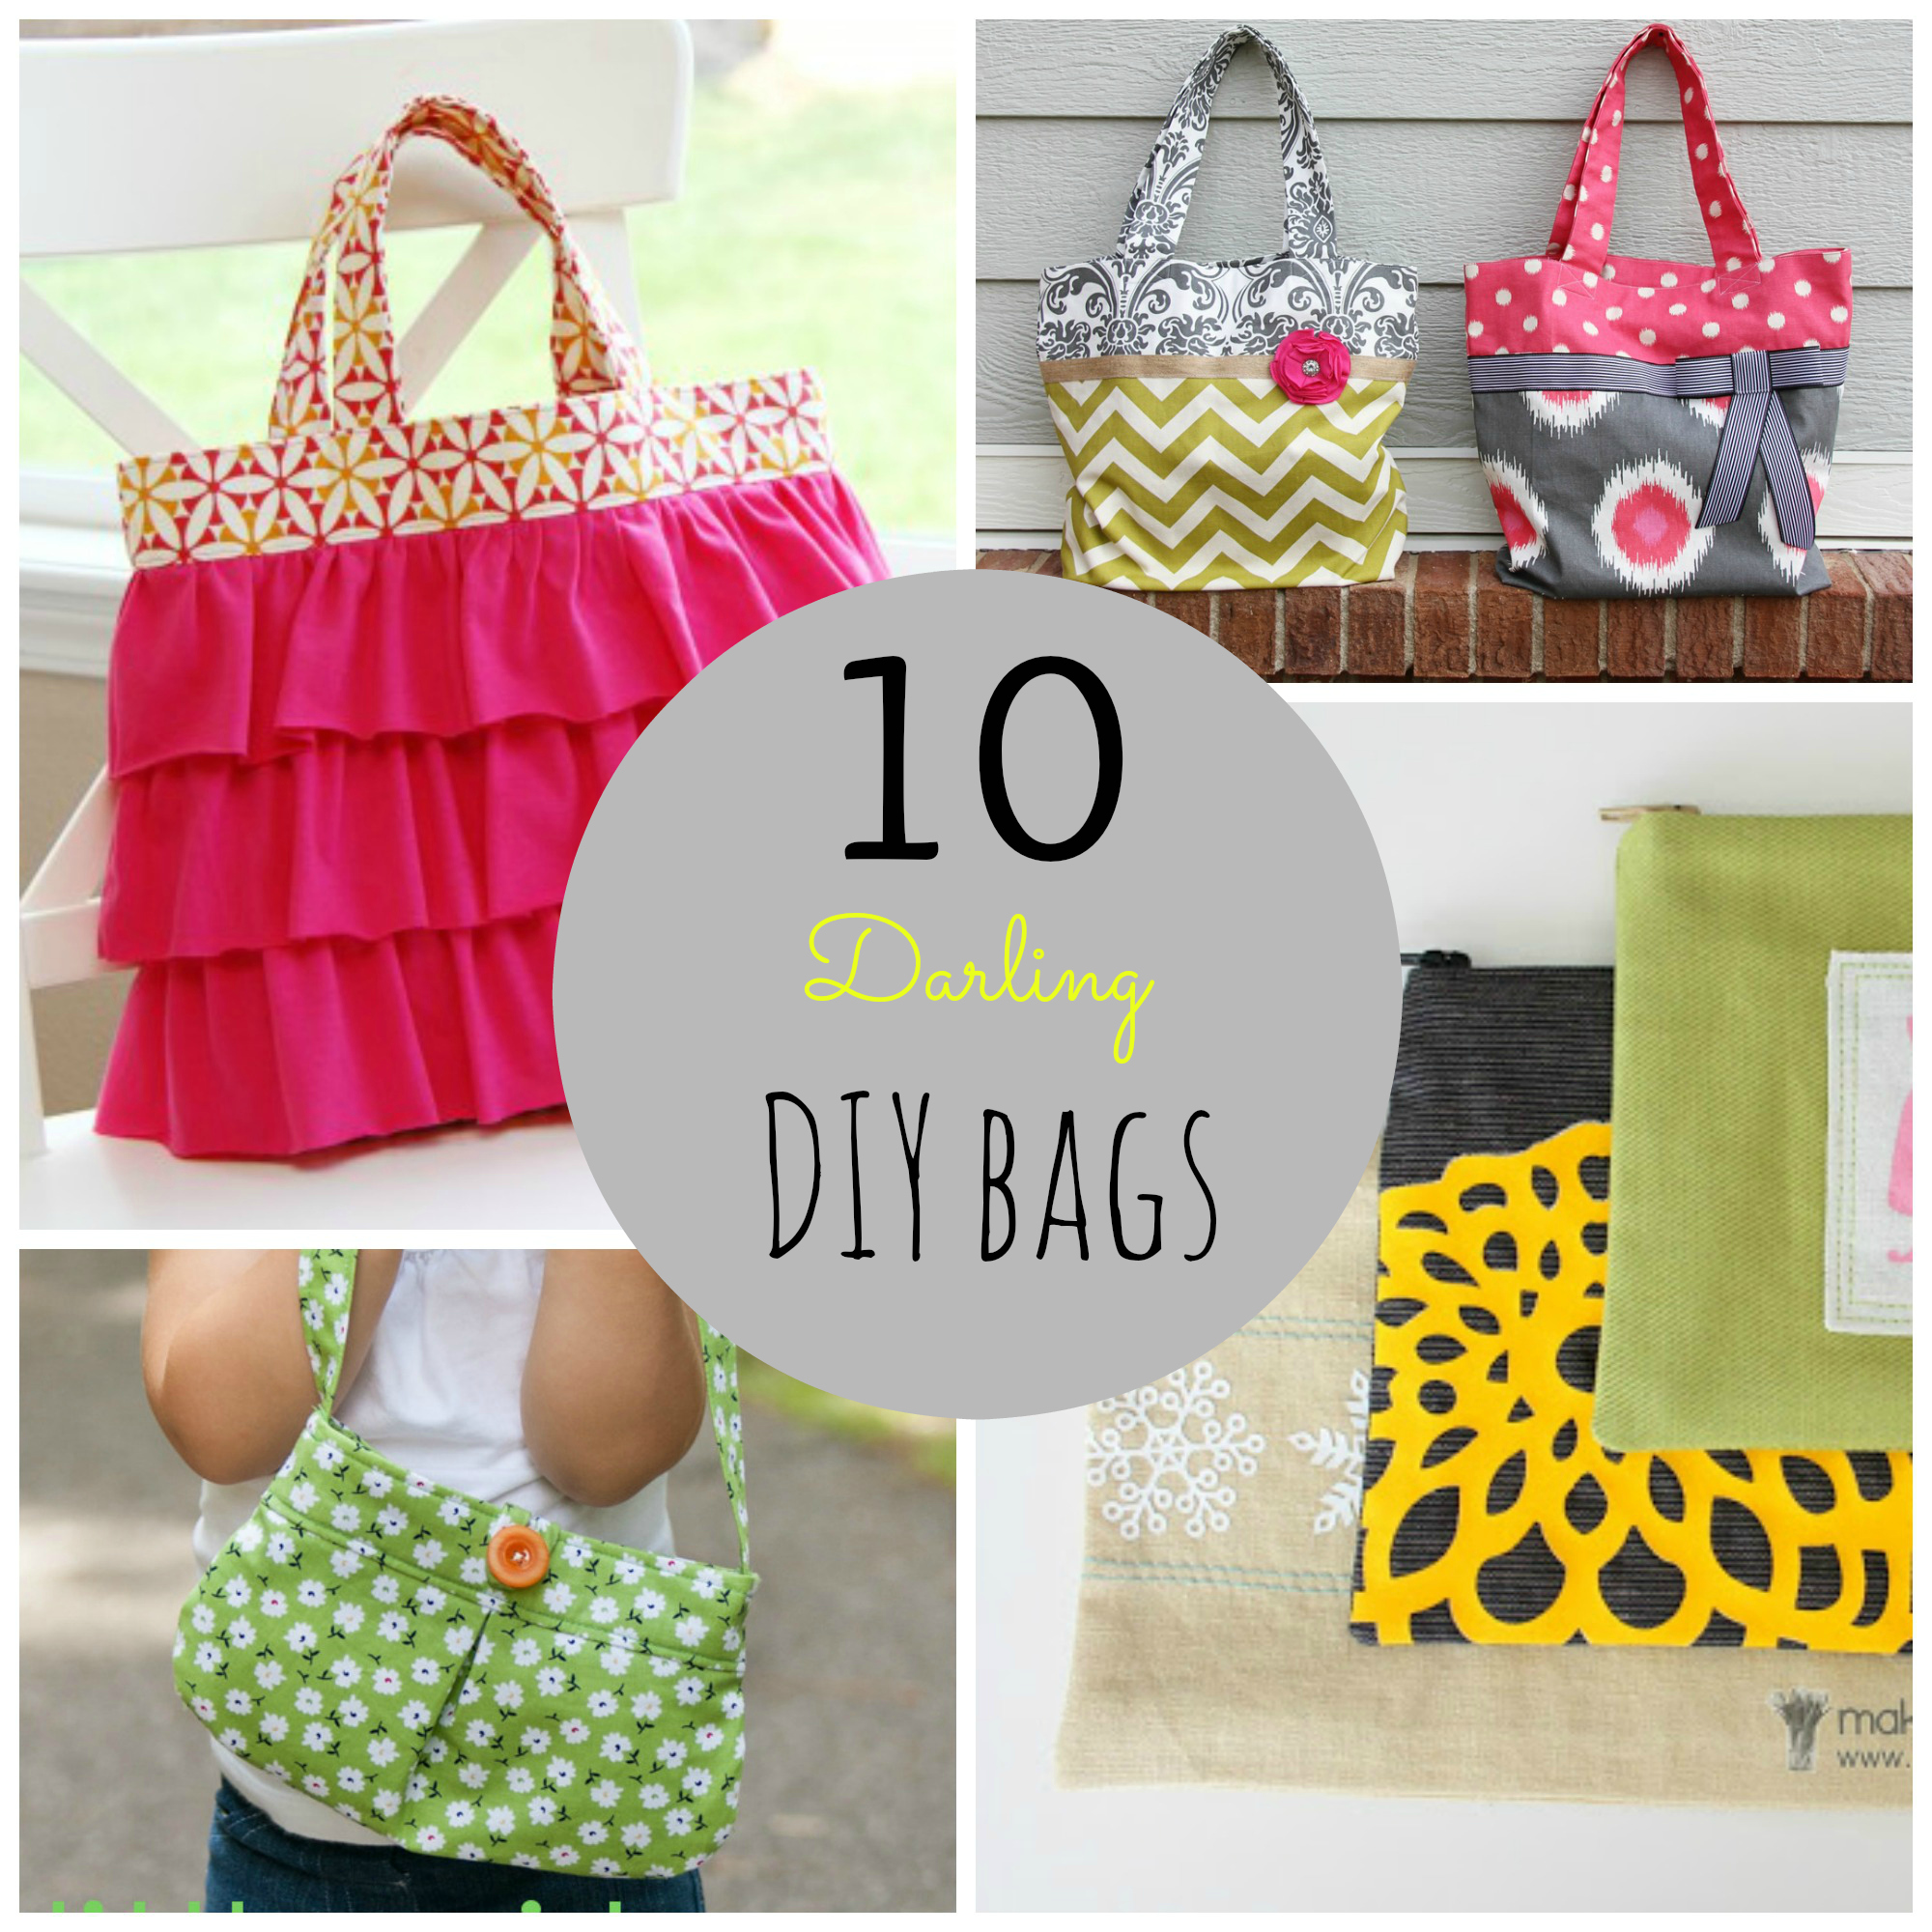 10 Darling DIY Bags